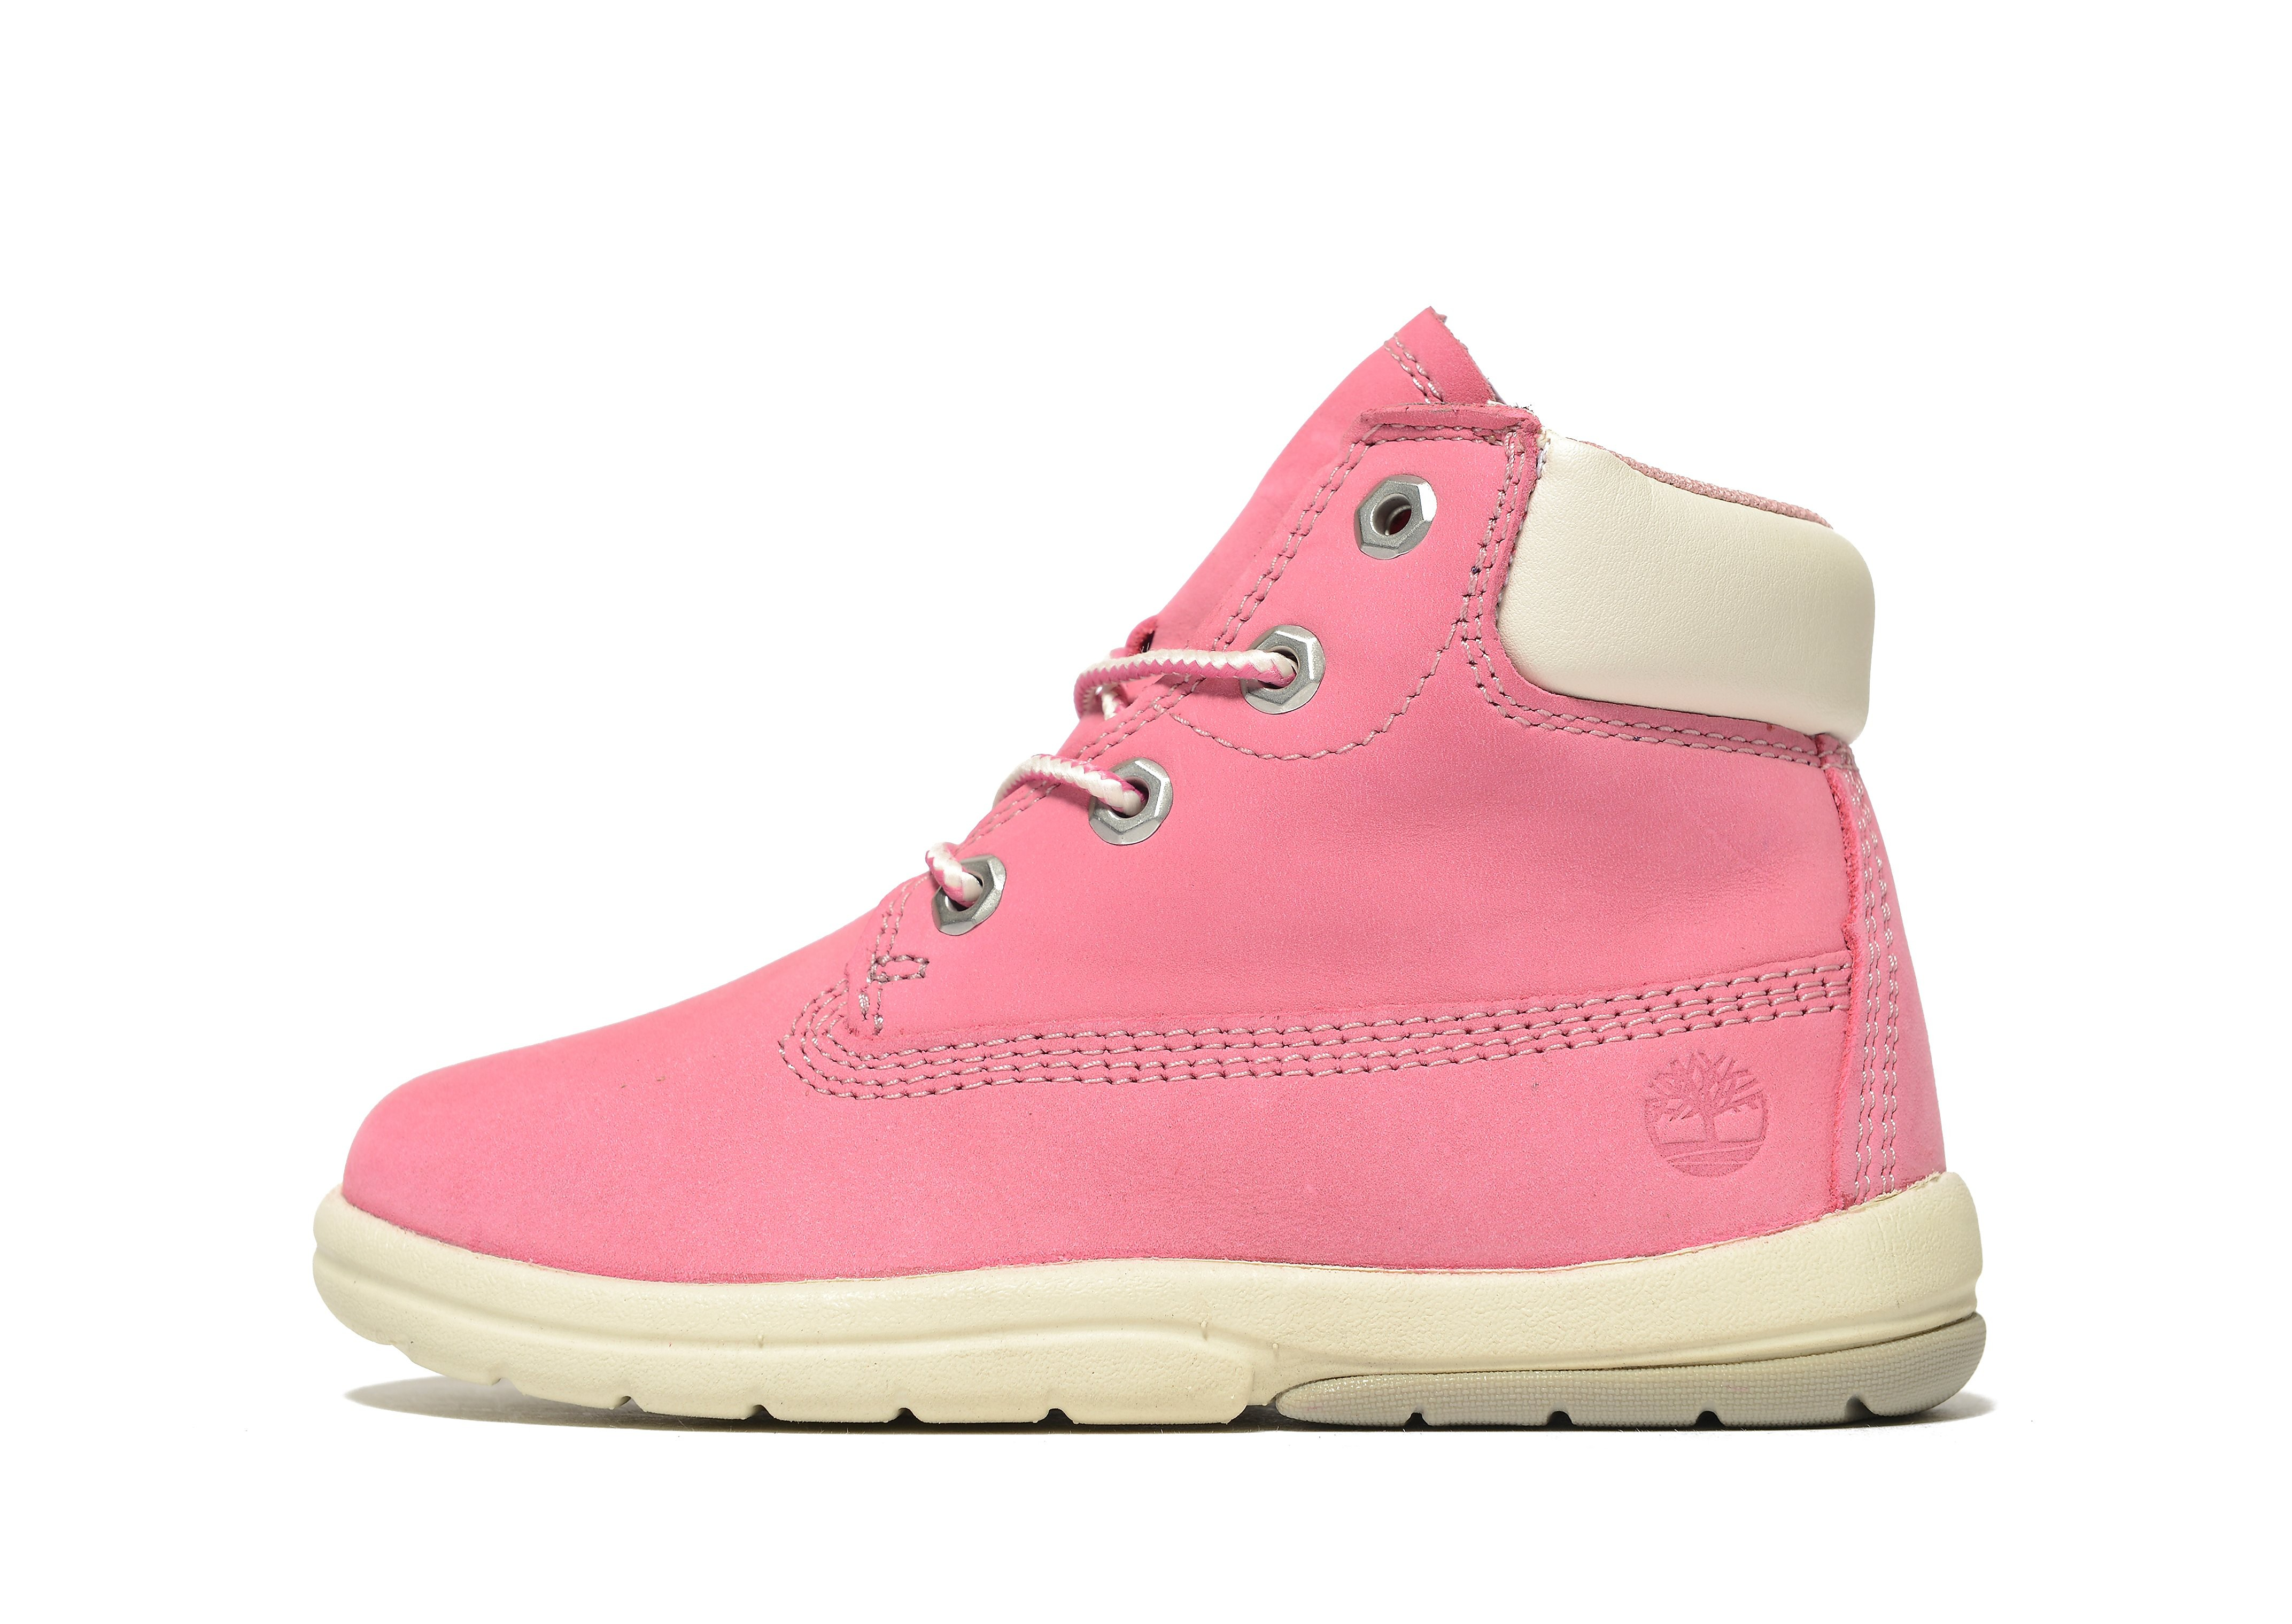 Timberland Toddle Tracks Boots Infant